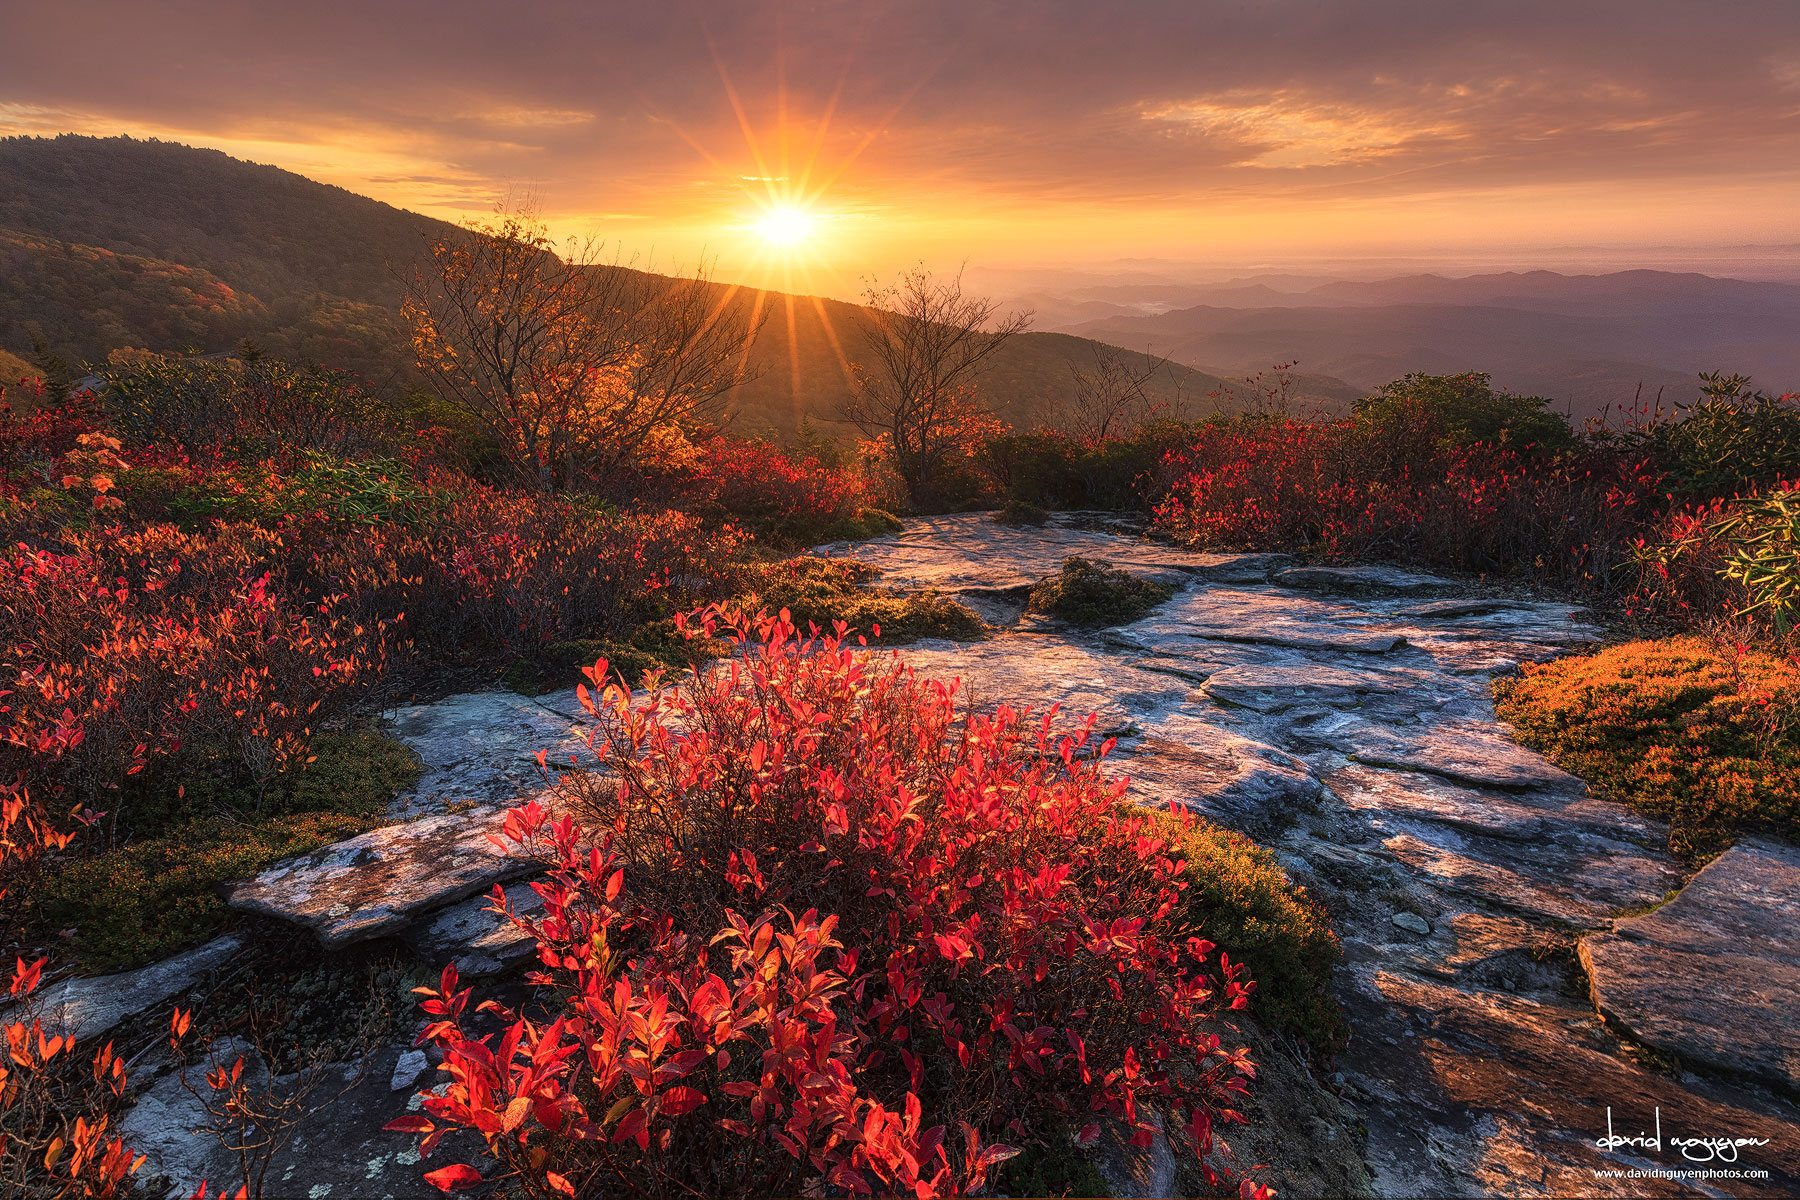 Sunrises & Sunsets Archives - Blue Ridge Parkway Daily - Maps ...